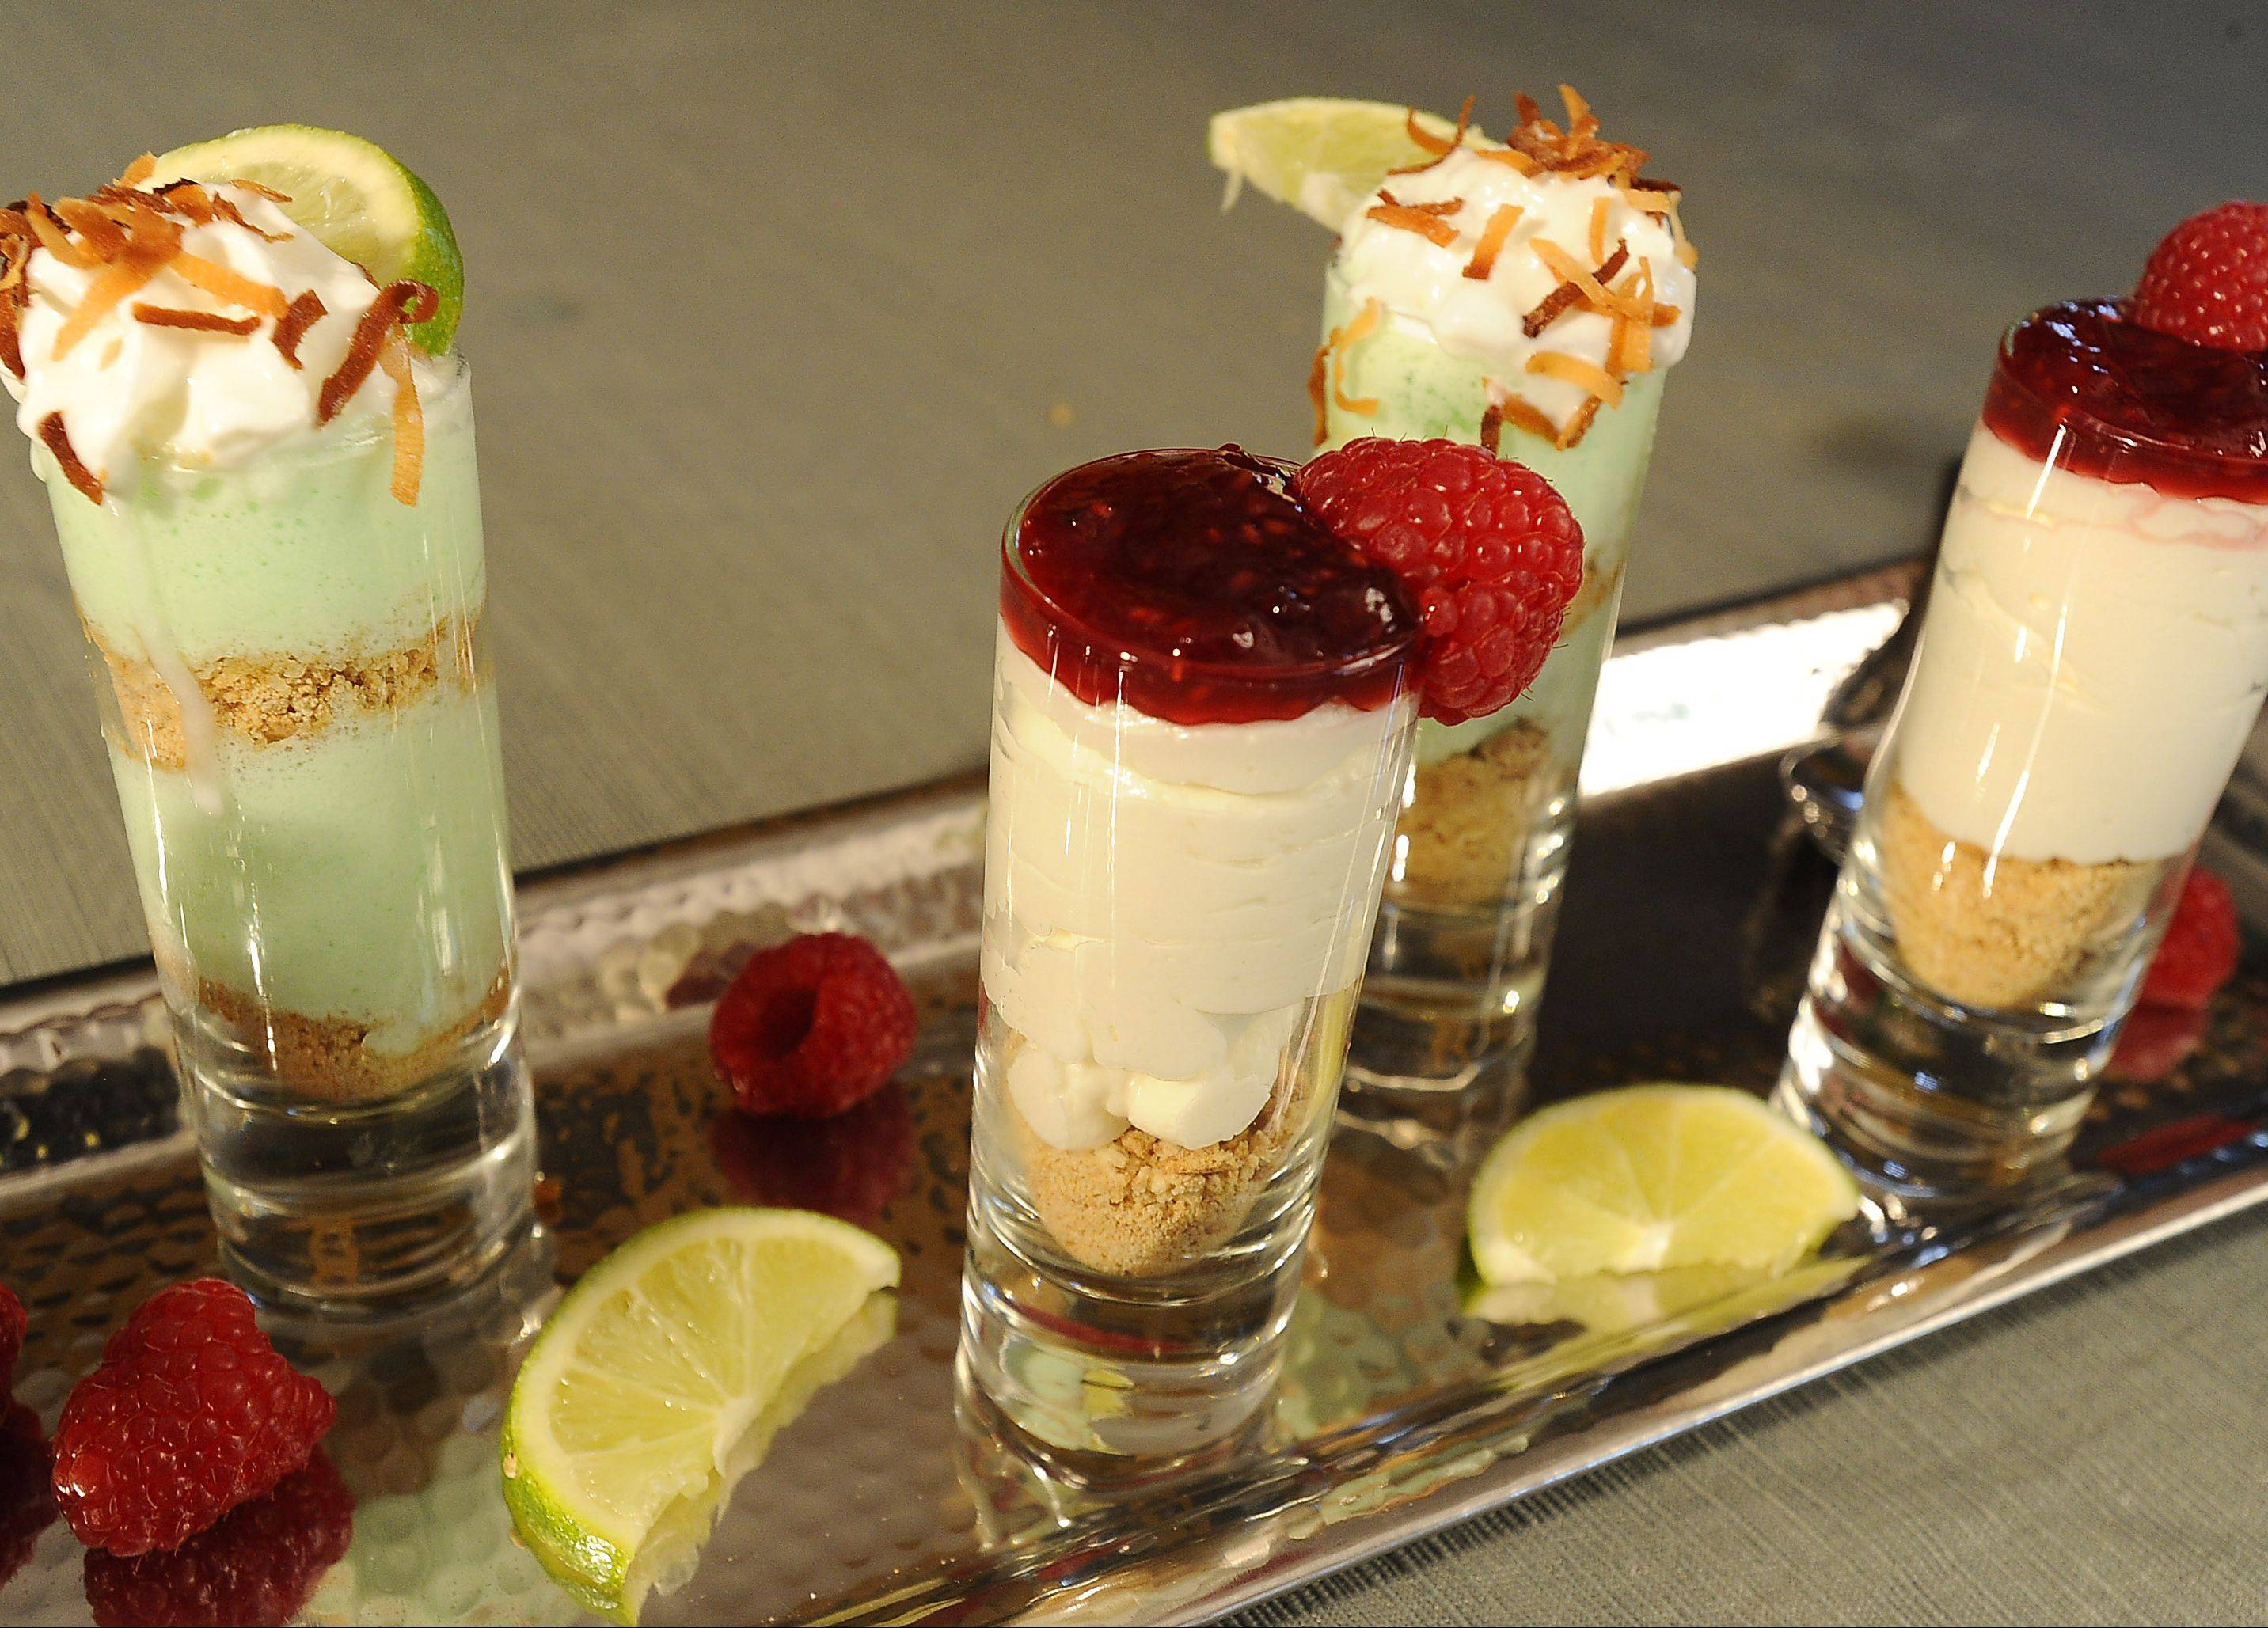 Courtney Czarnik likes creating individual desserts like these raspberry cheesecake and Key lime pie parfaits.